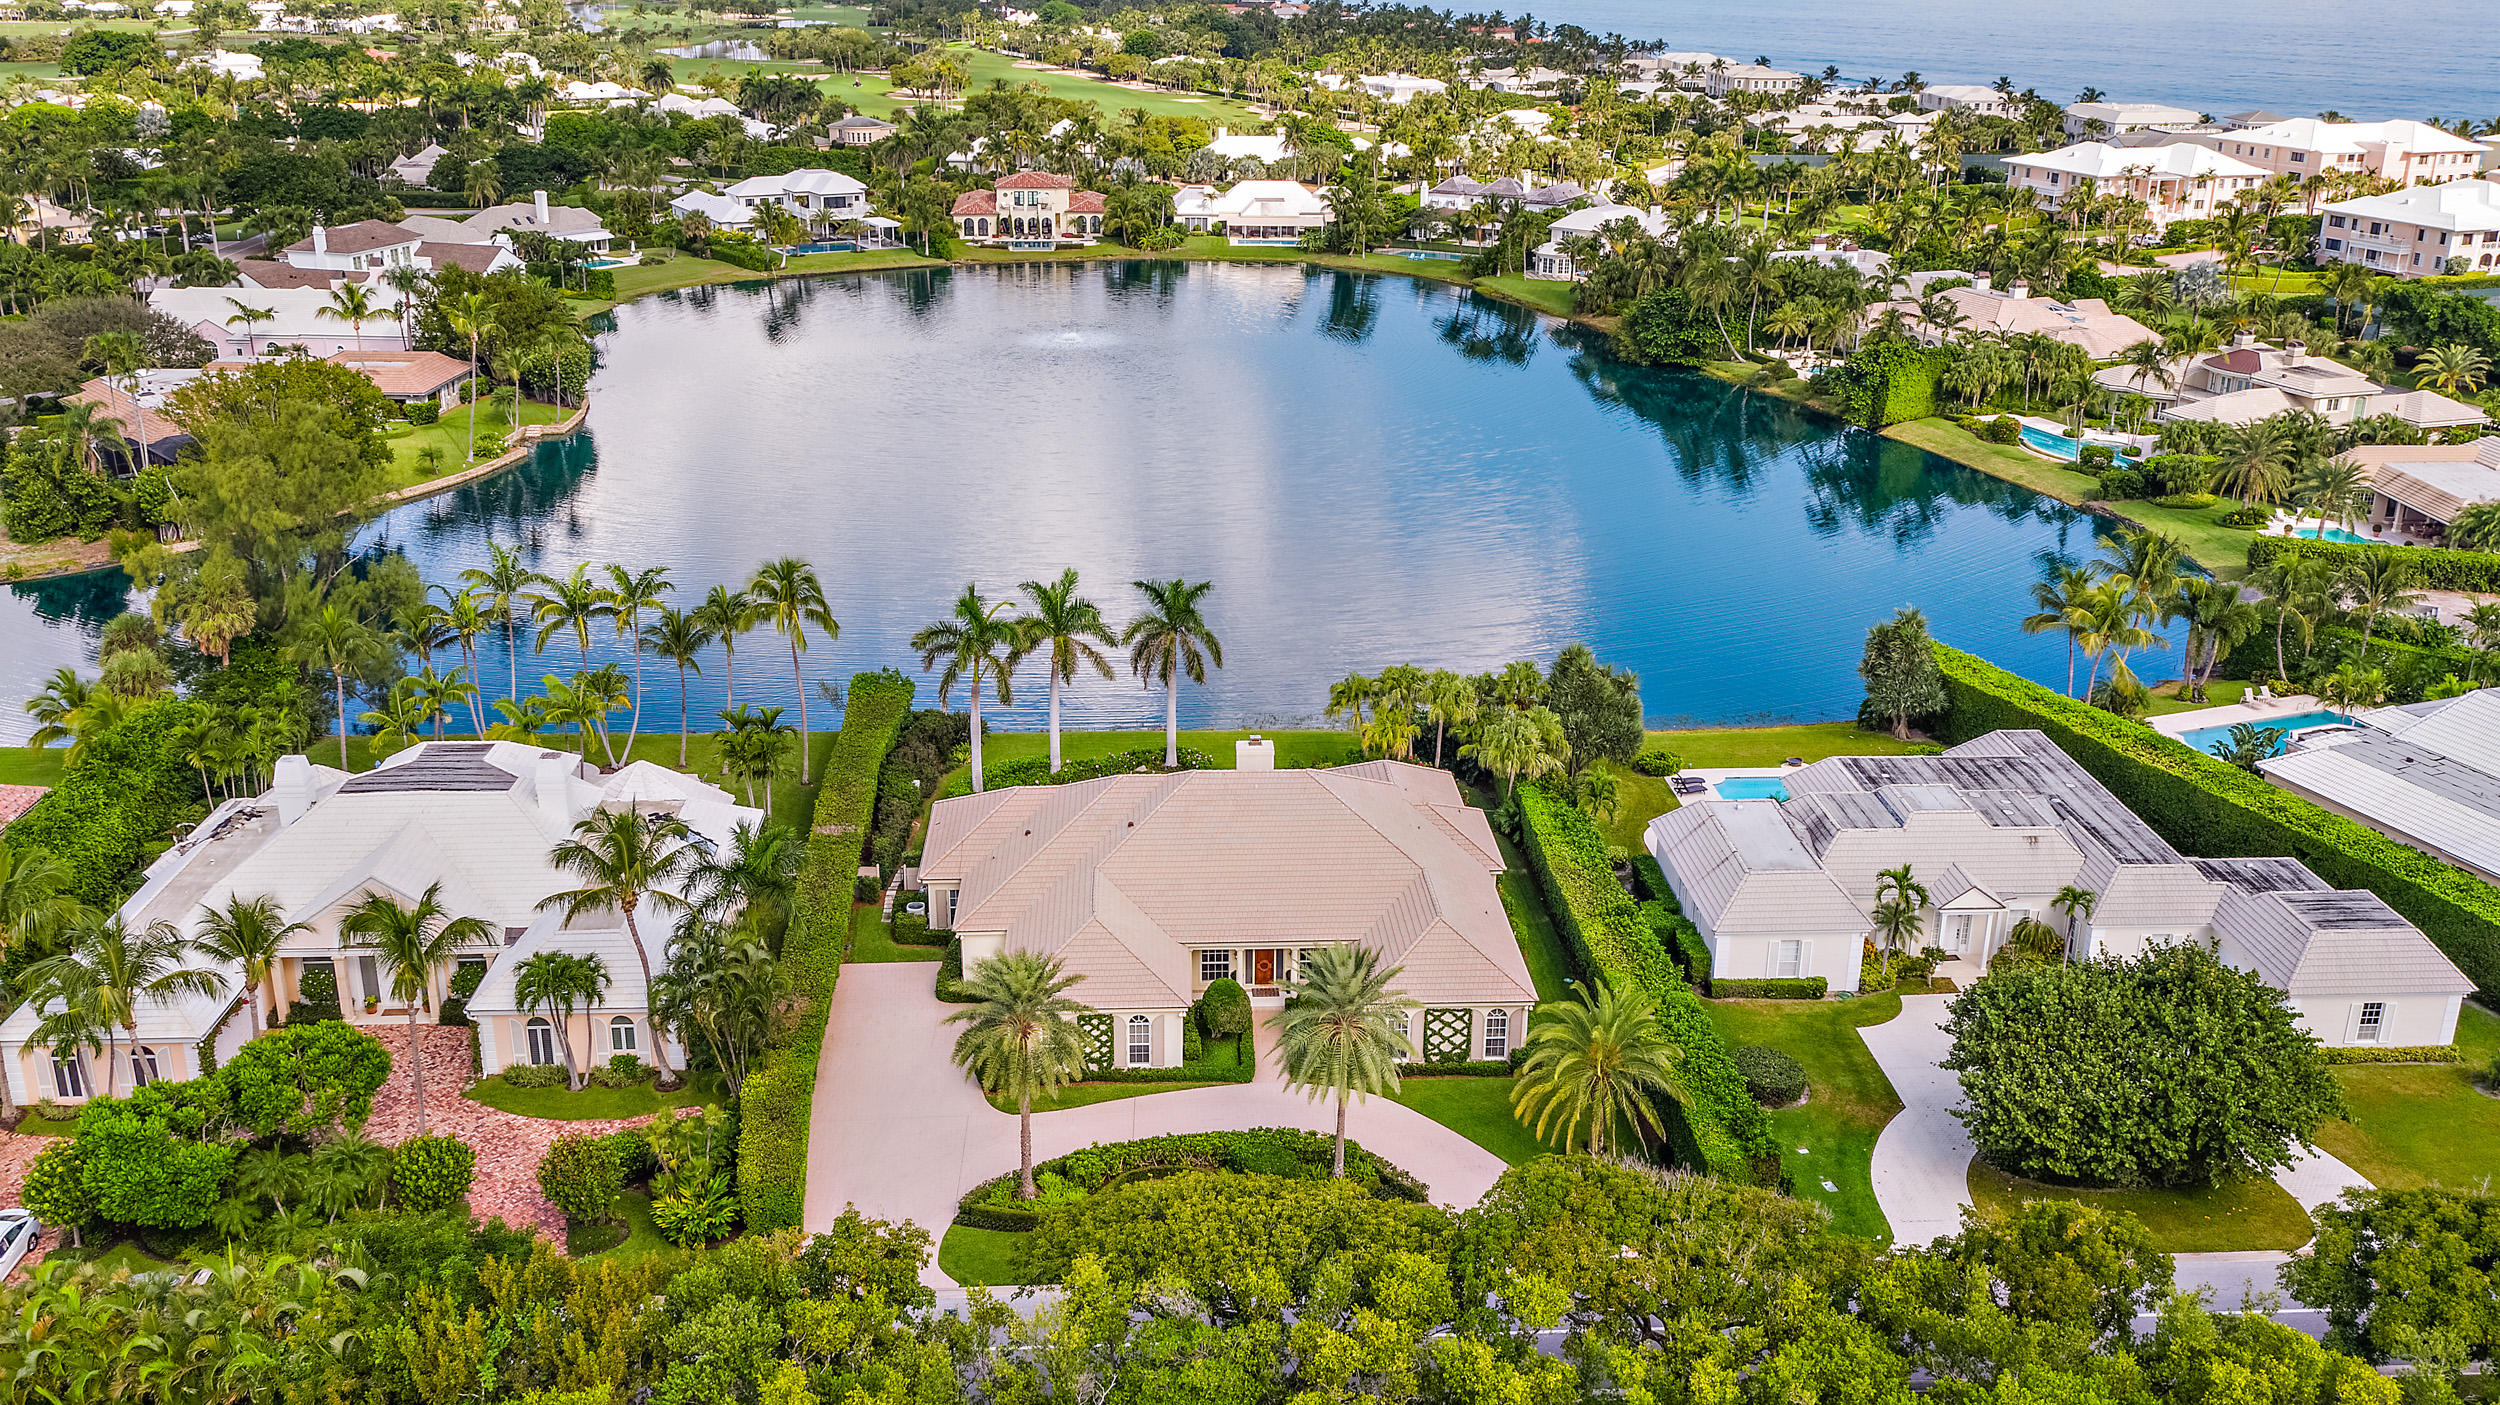 New Home for sale at 671 Turtle Beach Road in North Palm Beach